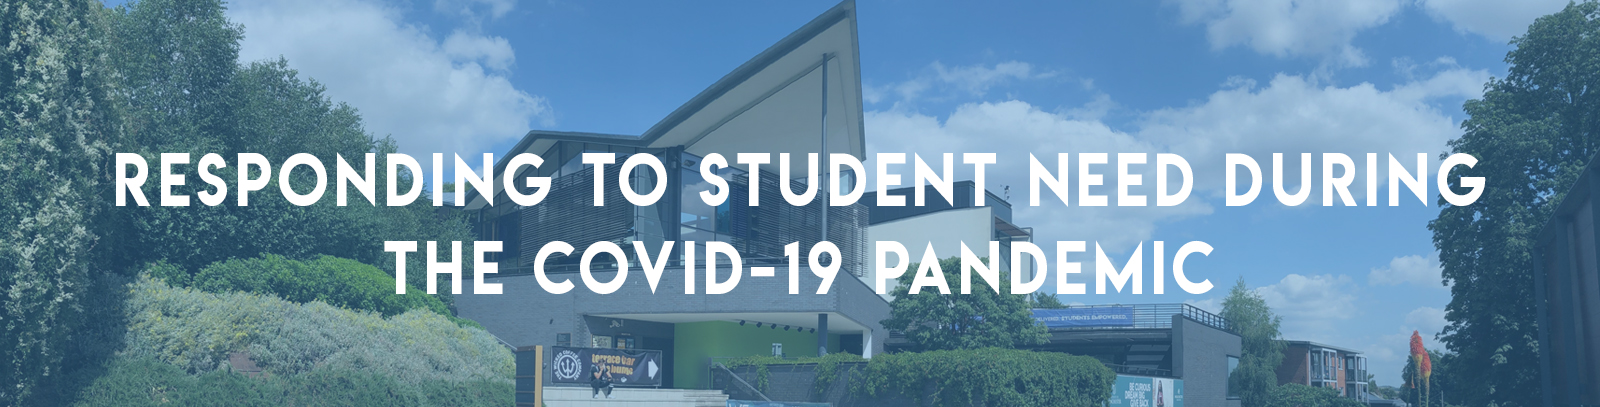 Student need banner